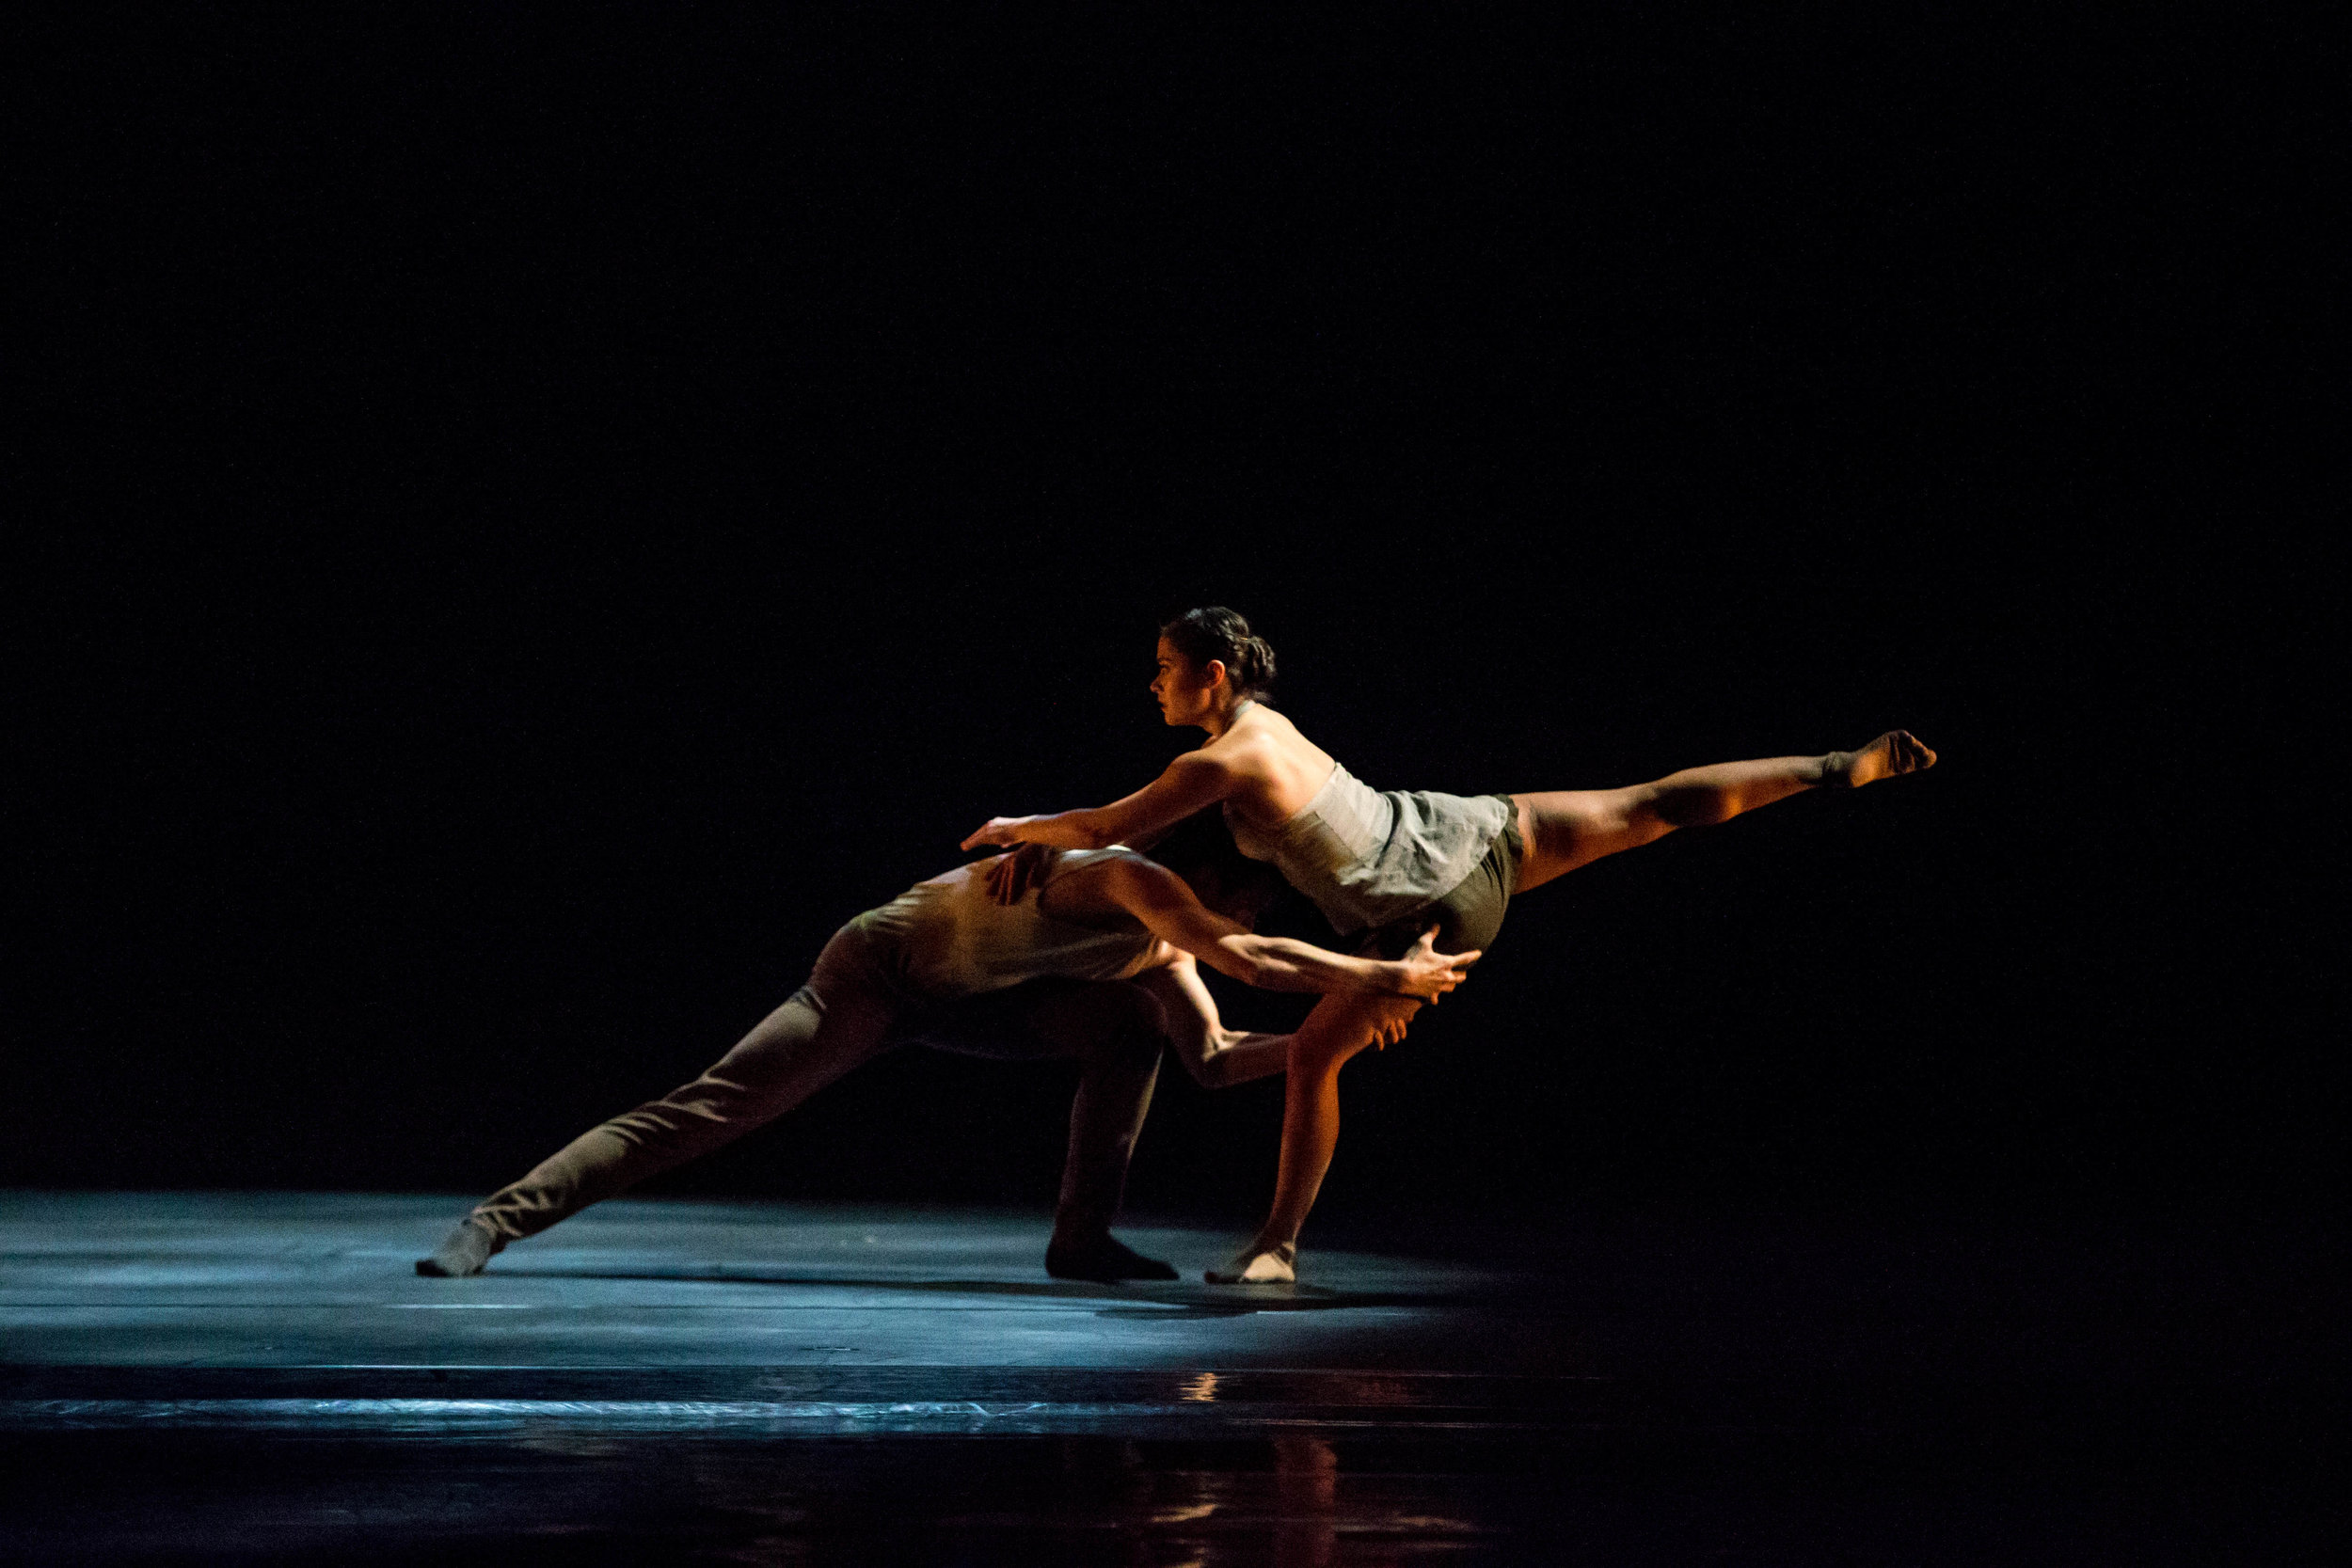 Hubbard Street Dancers Craig D. Black Jr. and Alicia Delgadillo in Alejandro Cerrudo's Silent Ghost. Photo by Cheryl Mann.